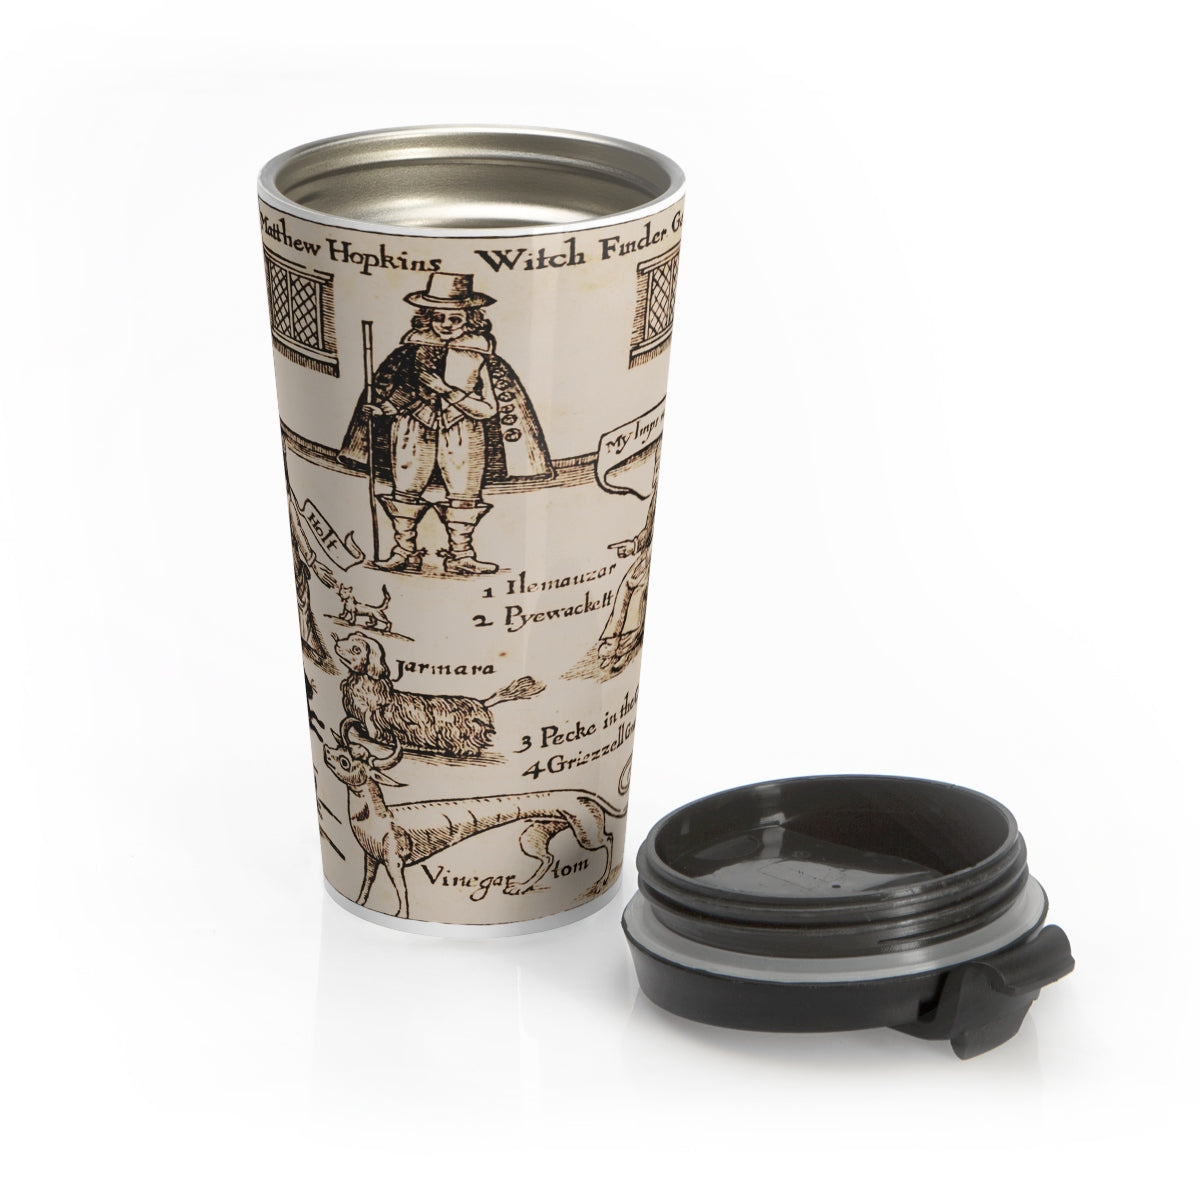 Witchfinder Generall Stainless Steel Travel Mug